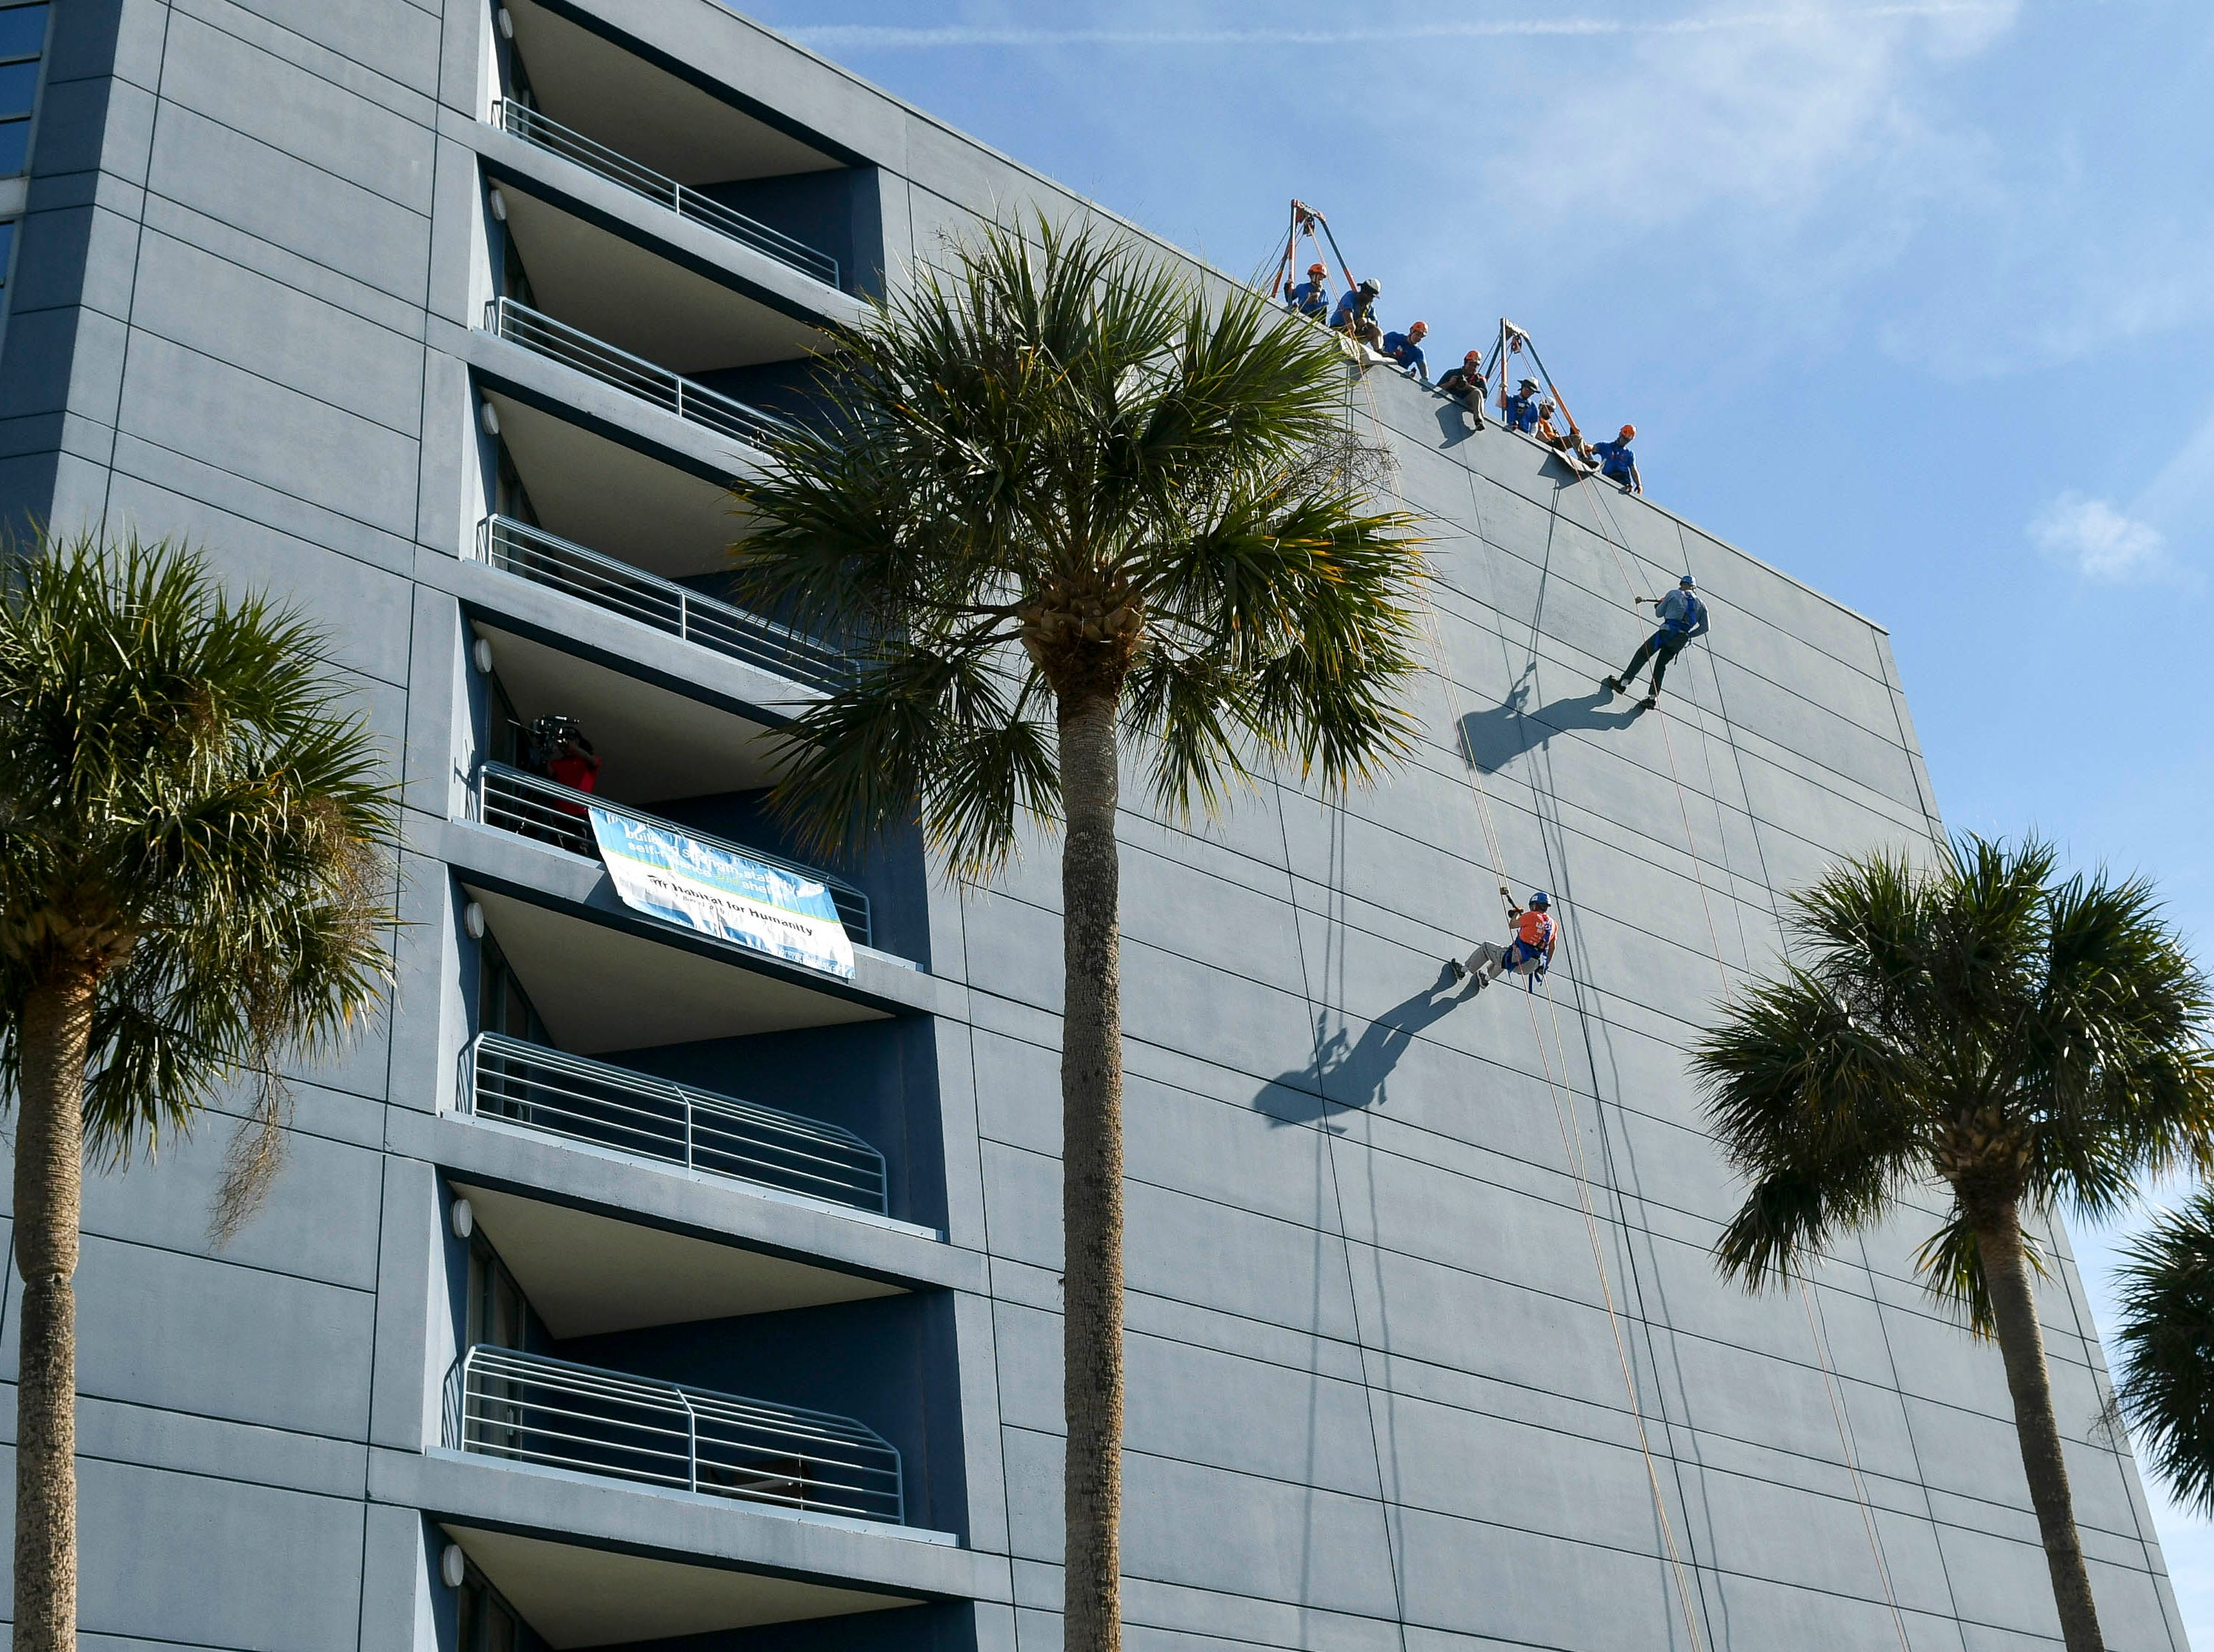 Participants in the Over the Edge fundraiser head down the side of the Melbourne Rialto Hilton on Saturday morning. Over the Edge is a fundraiser for Habitat Humanity of Brevard, an organization that helps low-income families buy affordable houses. Teams and individuals raised money for the chance to rappel eight stories down the Hilton.